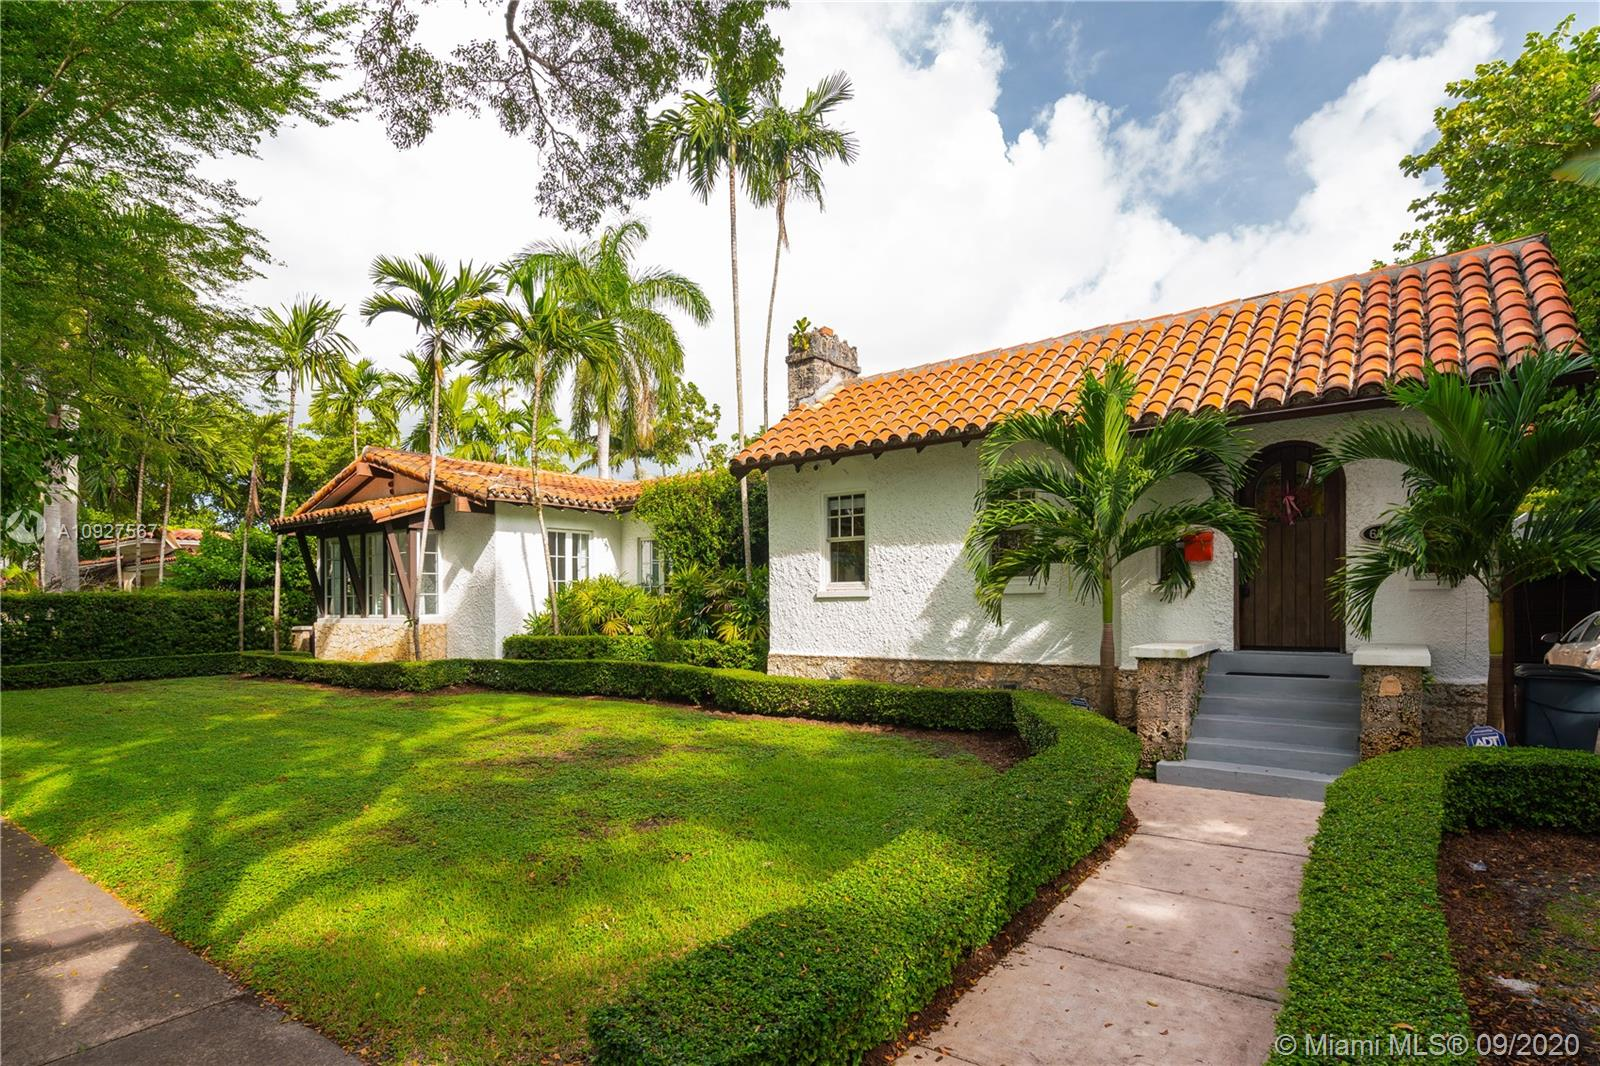 Historically designated 1922 built 5 bedroom 3 bath 3000 sq ' Coral Rock Craftsman charmer on a 10,000 sq ' lot was the 25th home built in Coral Gables and the 1st on Alcazar Ave. In 2006, renowned architect, Nelson de Leon designed an addition, more than doubling the size of the original house & achieving the dazzling and almost impossible feat of constructing a brand new addition that was completely in harmony with the original. Turn-key condition throughout. Splendid outdoor living spaces, poolside courtyard. Exceptionally spacious master suite with huge bath & walk-in closet. High ceilings. Fireplace. Great storage. Top Gables location - EZ walk to downtown, Granada GC & 15 minutes to Miami International Airport. Today's modern conveniences paired with the charm of yesteryear!